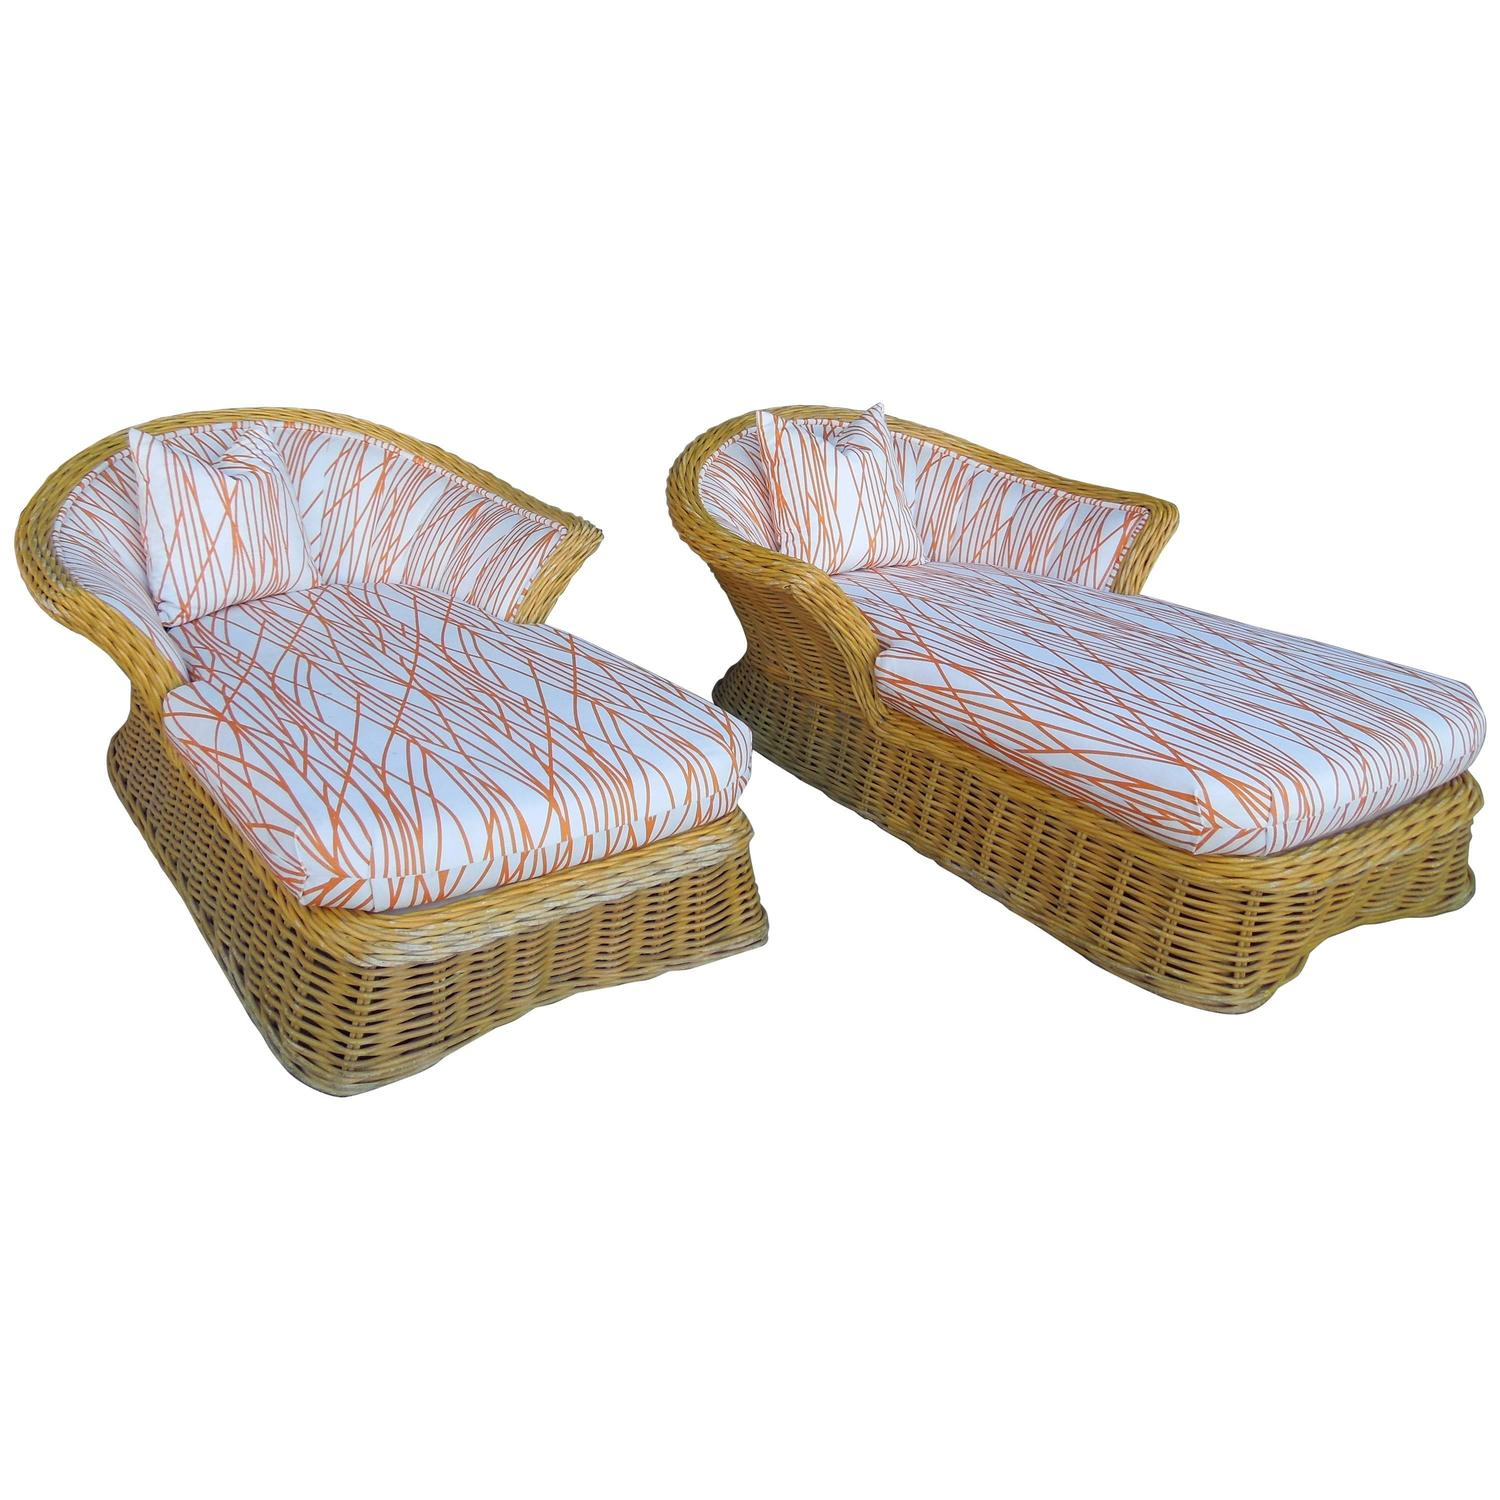 L Anfora Rattan Amphoren Lounge.Steve Chase Furniture Tables Chairs Sofas More 70 For Sale At